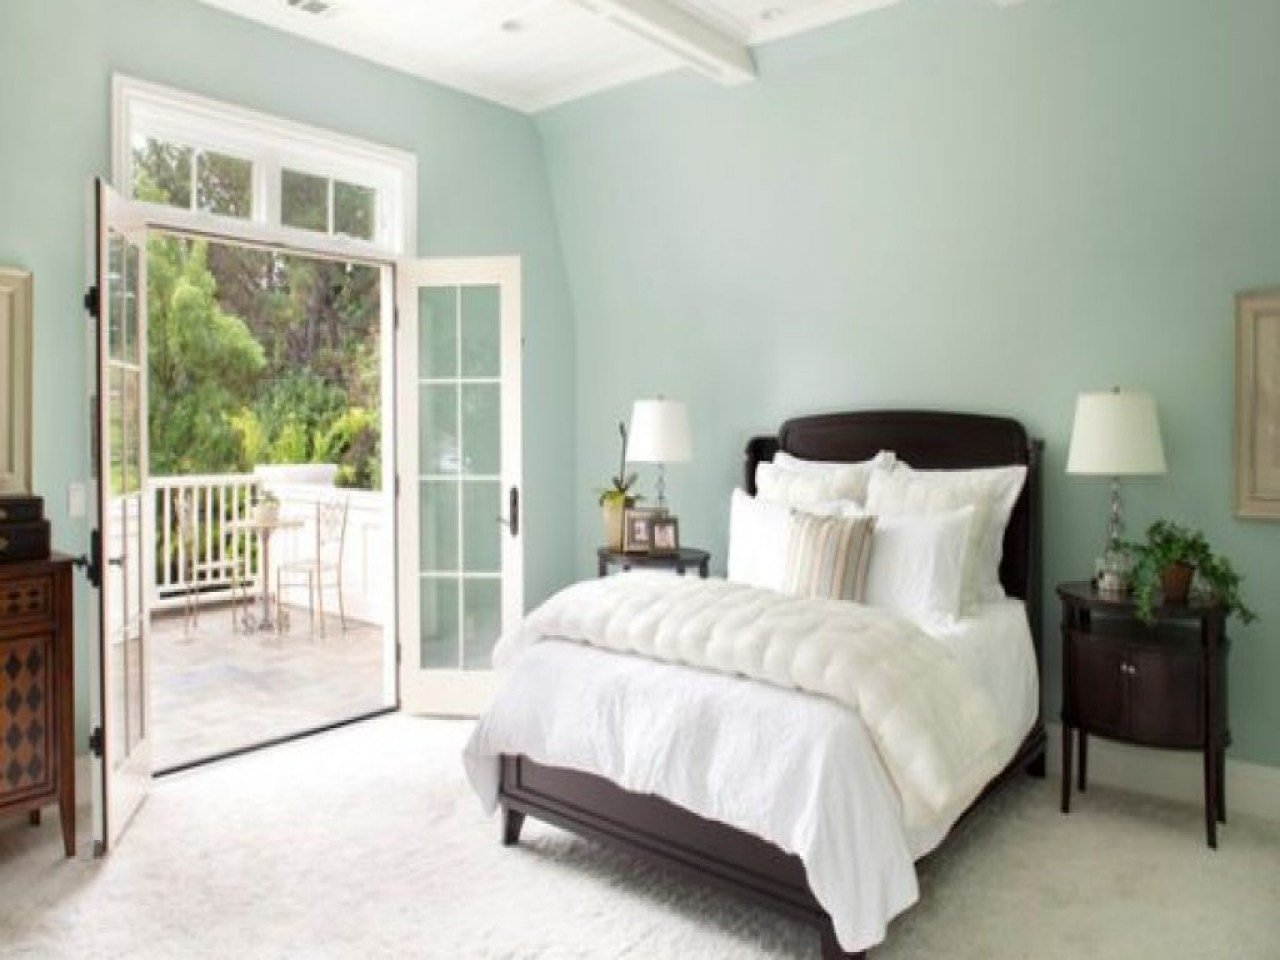 Best Remodel Small Bedroom Ocean View From Balcony Cheap Small With Pictures